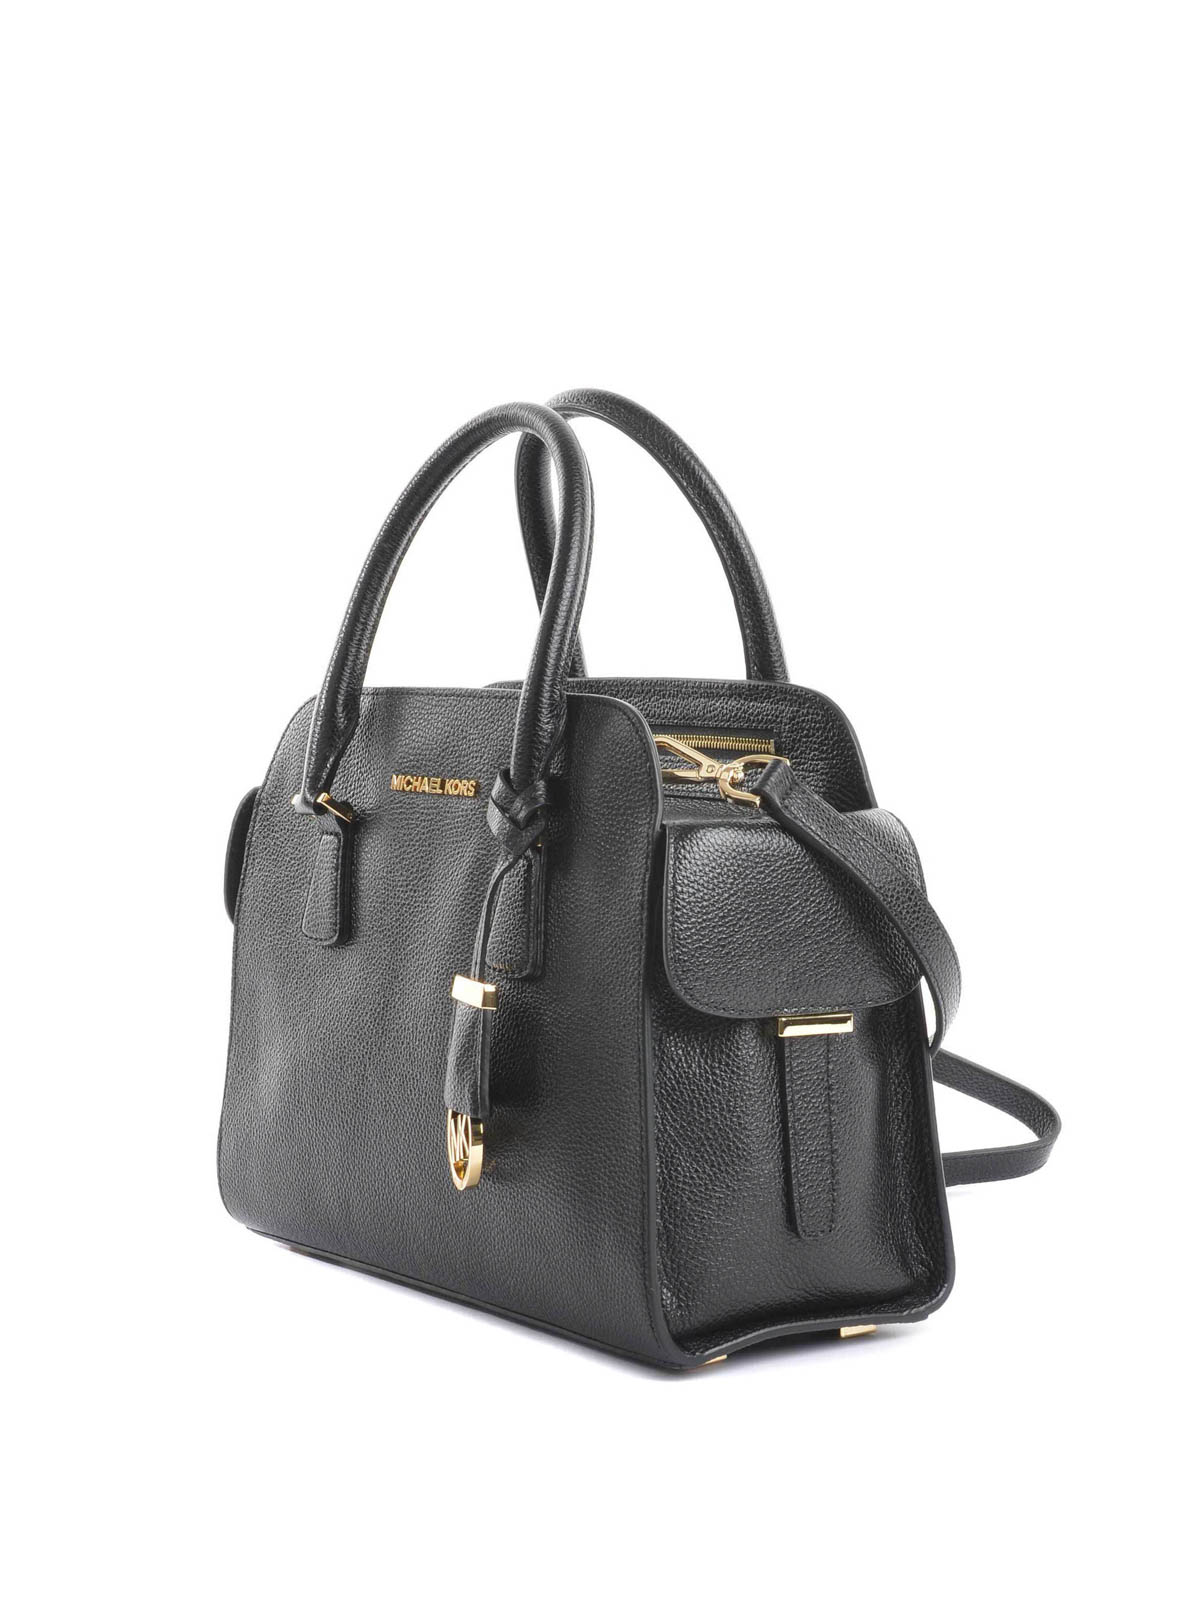 6897058f38ff ... germany michael kors totes bags online harper medium satchel 071d6 4b90c